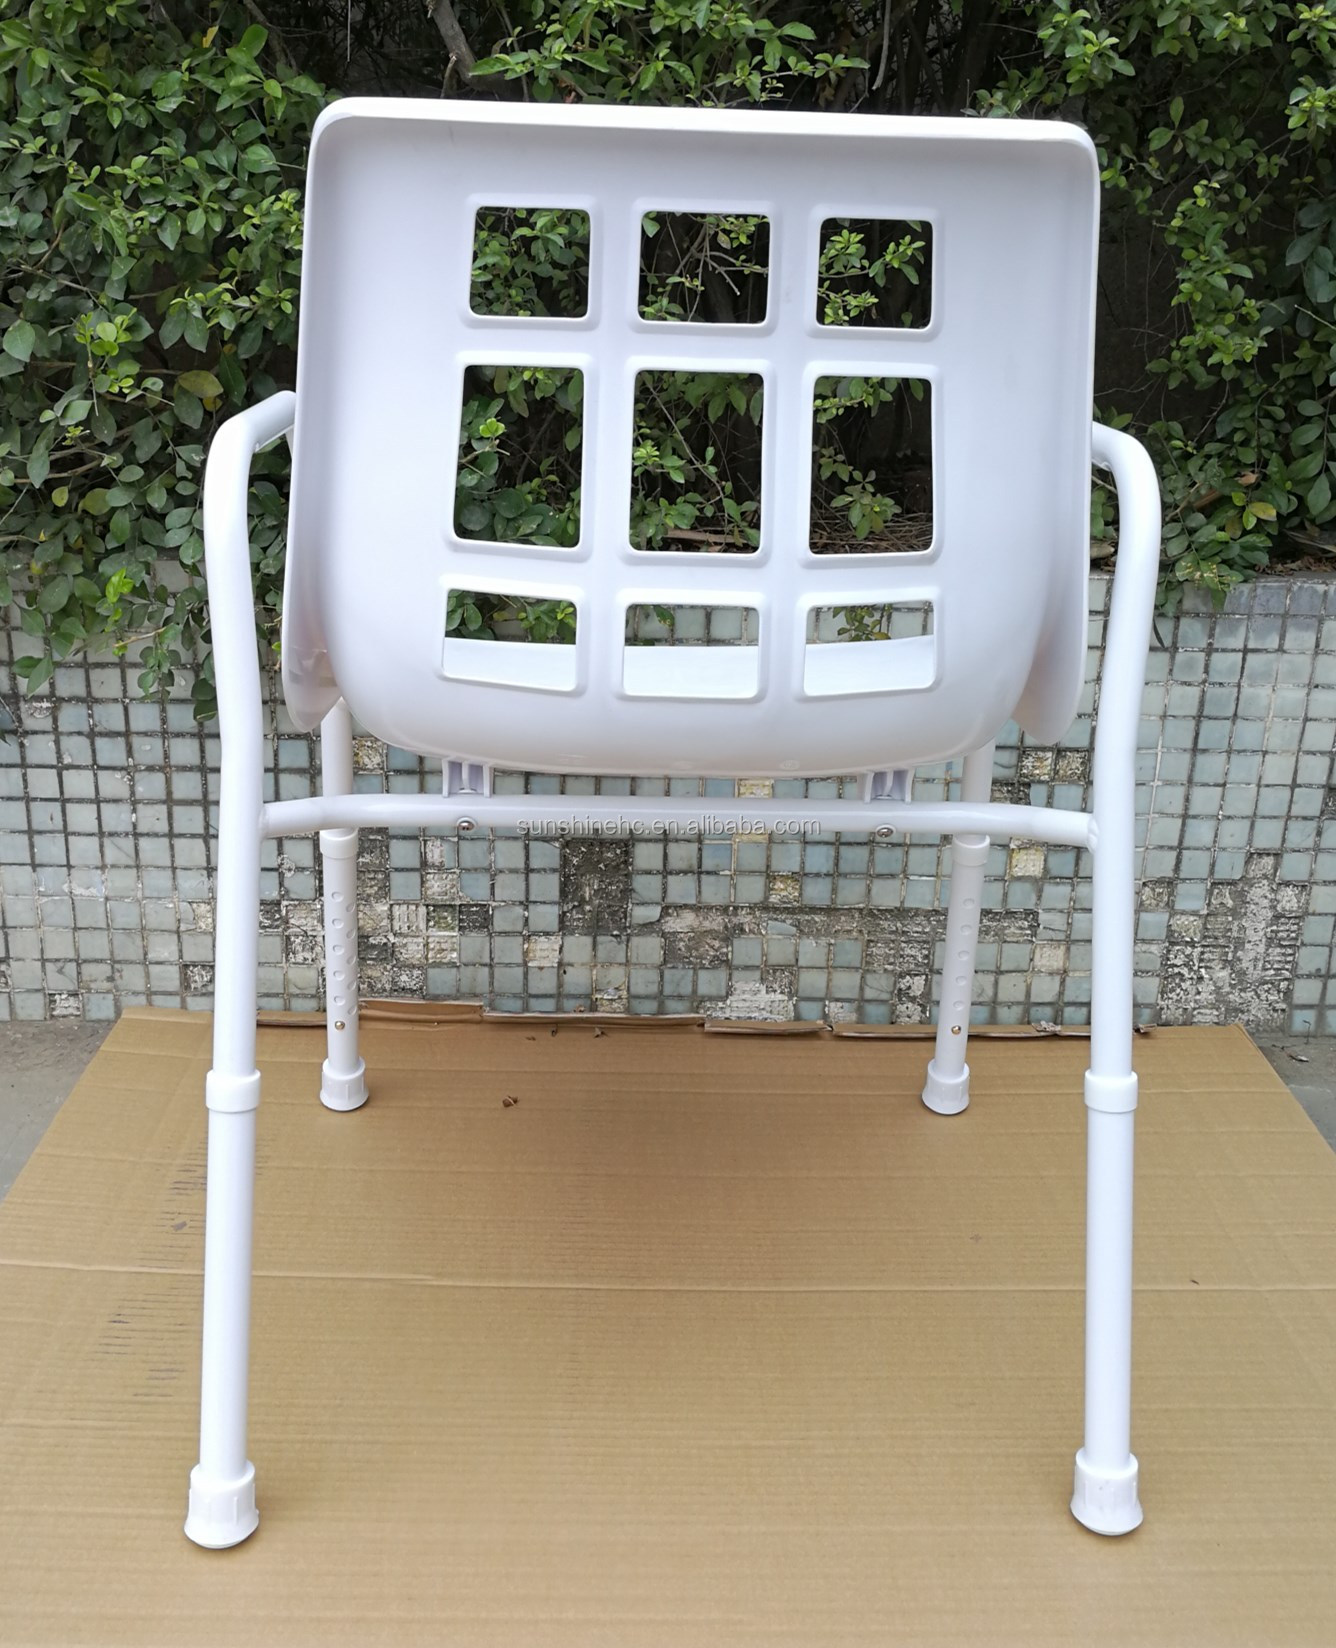 Wholesale Adjustable Shower Bench Plastic Bath Seat Shower Chair With Handles Ba313s Buy Shower Chair For Bathroom Safety Bath Seat With Handle For